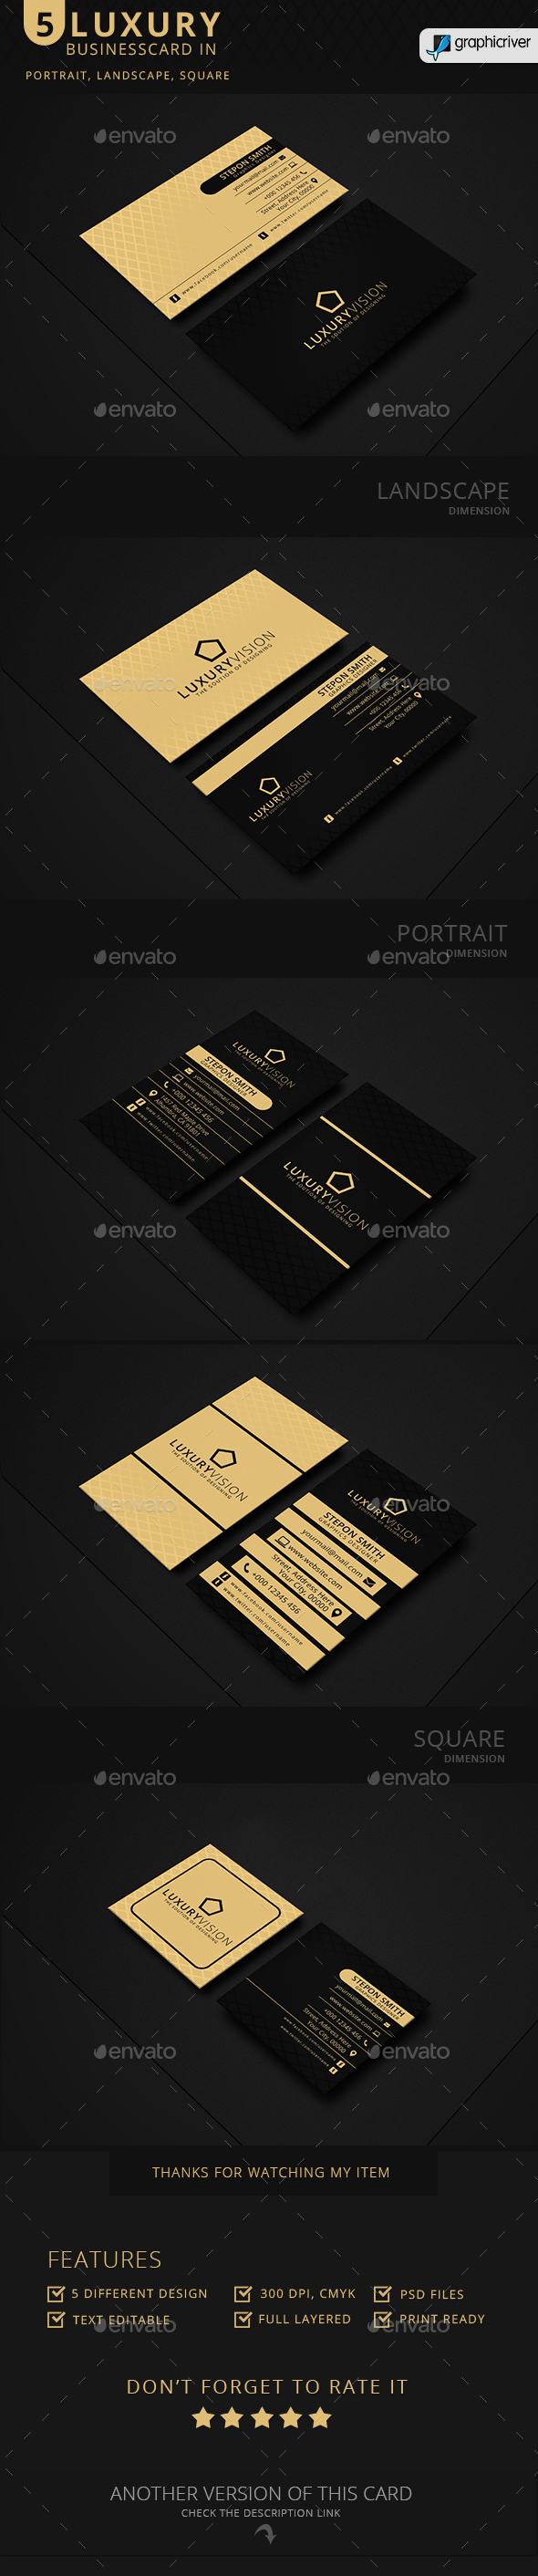 Luxury Vision Business Card - Business Cards Print Templates